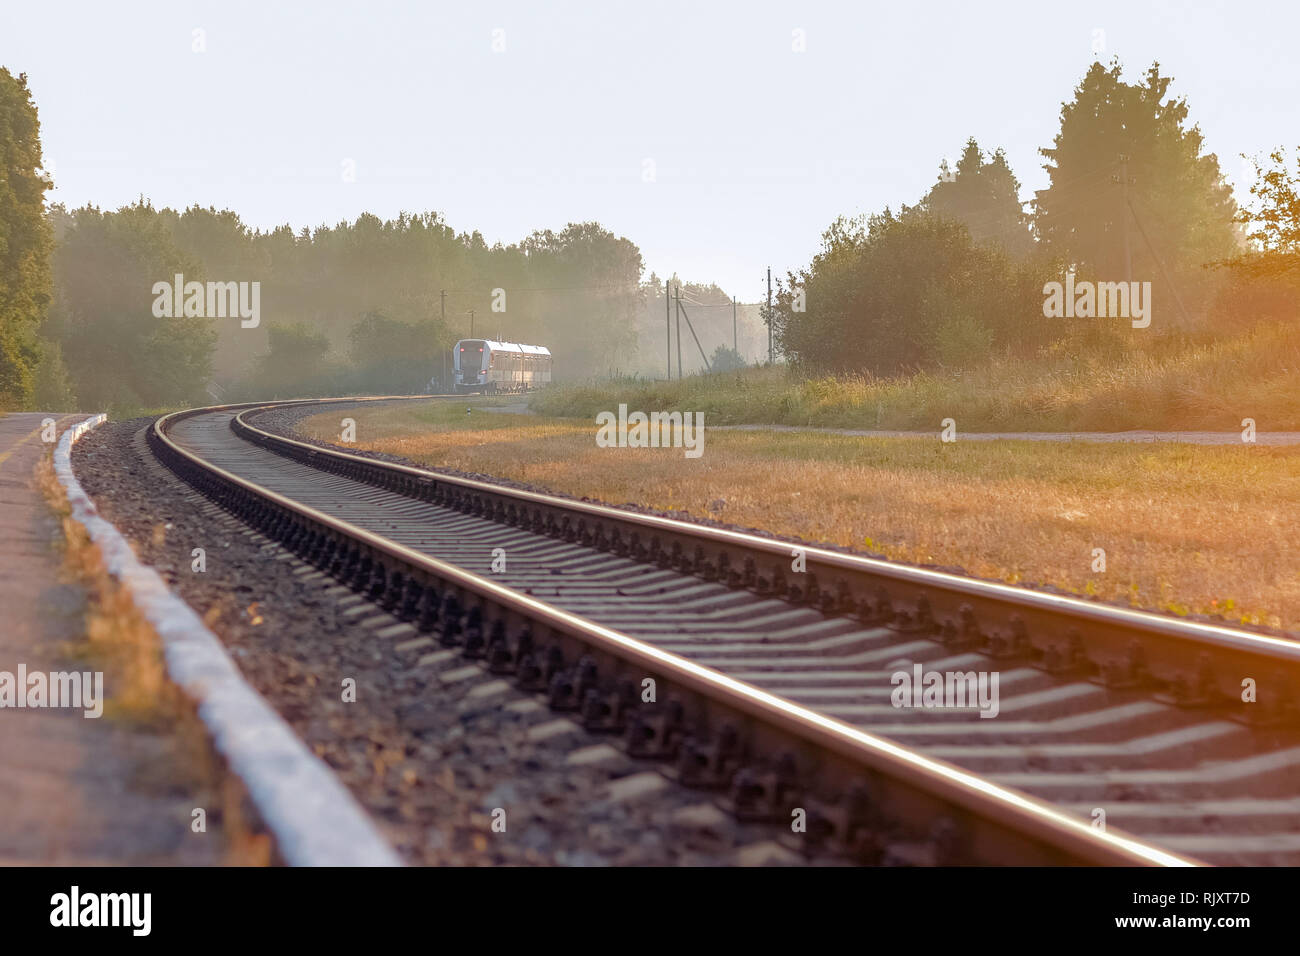 Train leaving on railroad on a beautiful foggy morning  with trees in the background and sun light on the side - Stock Image